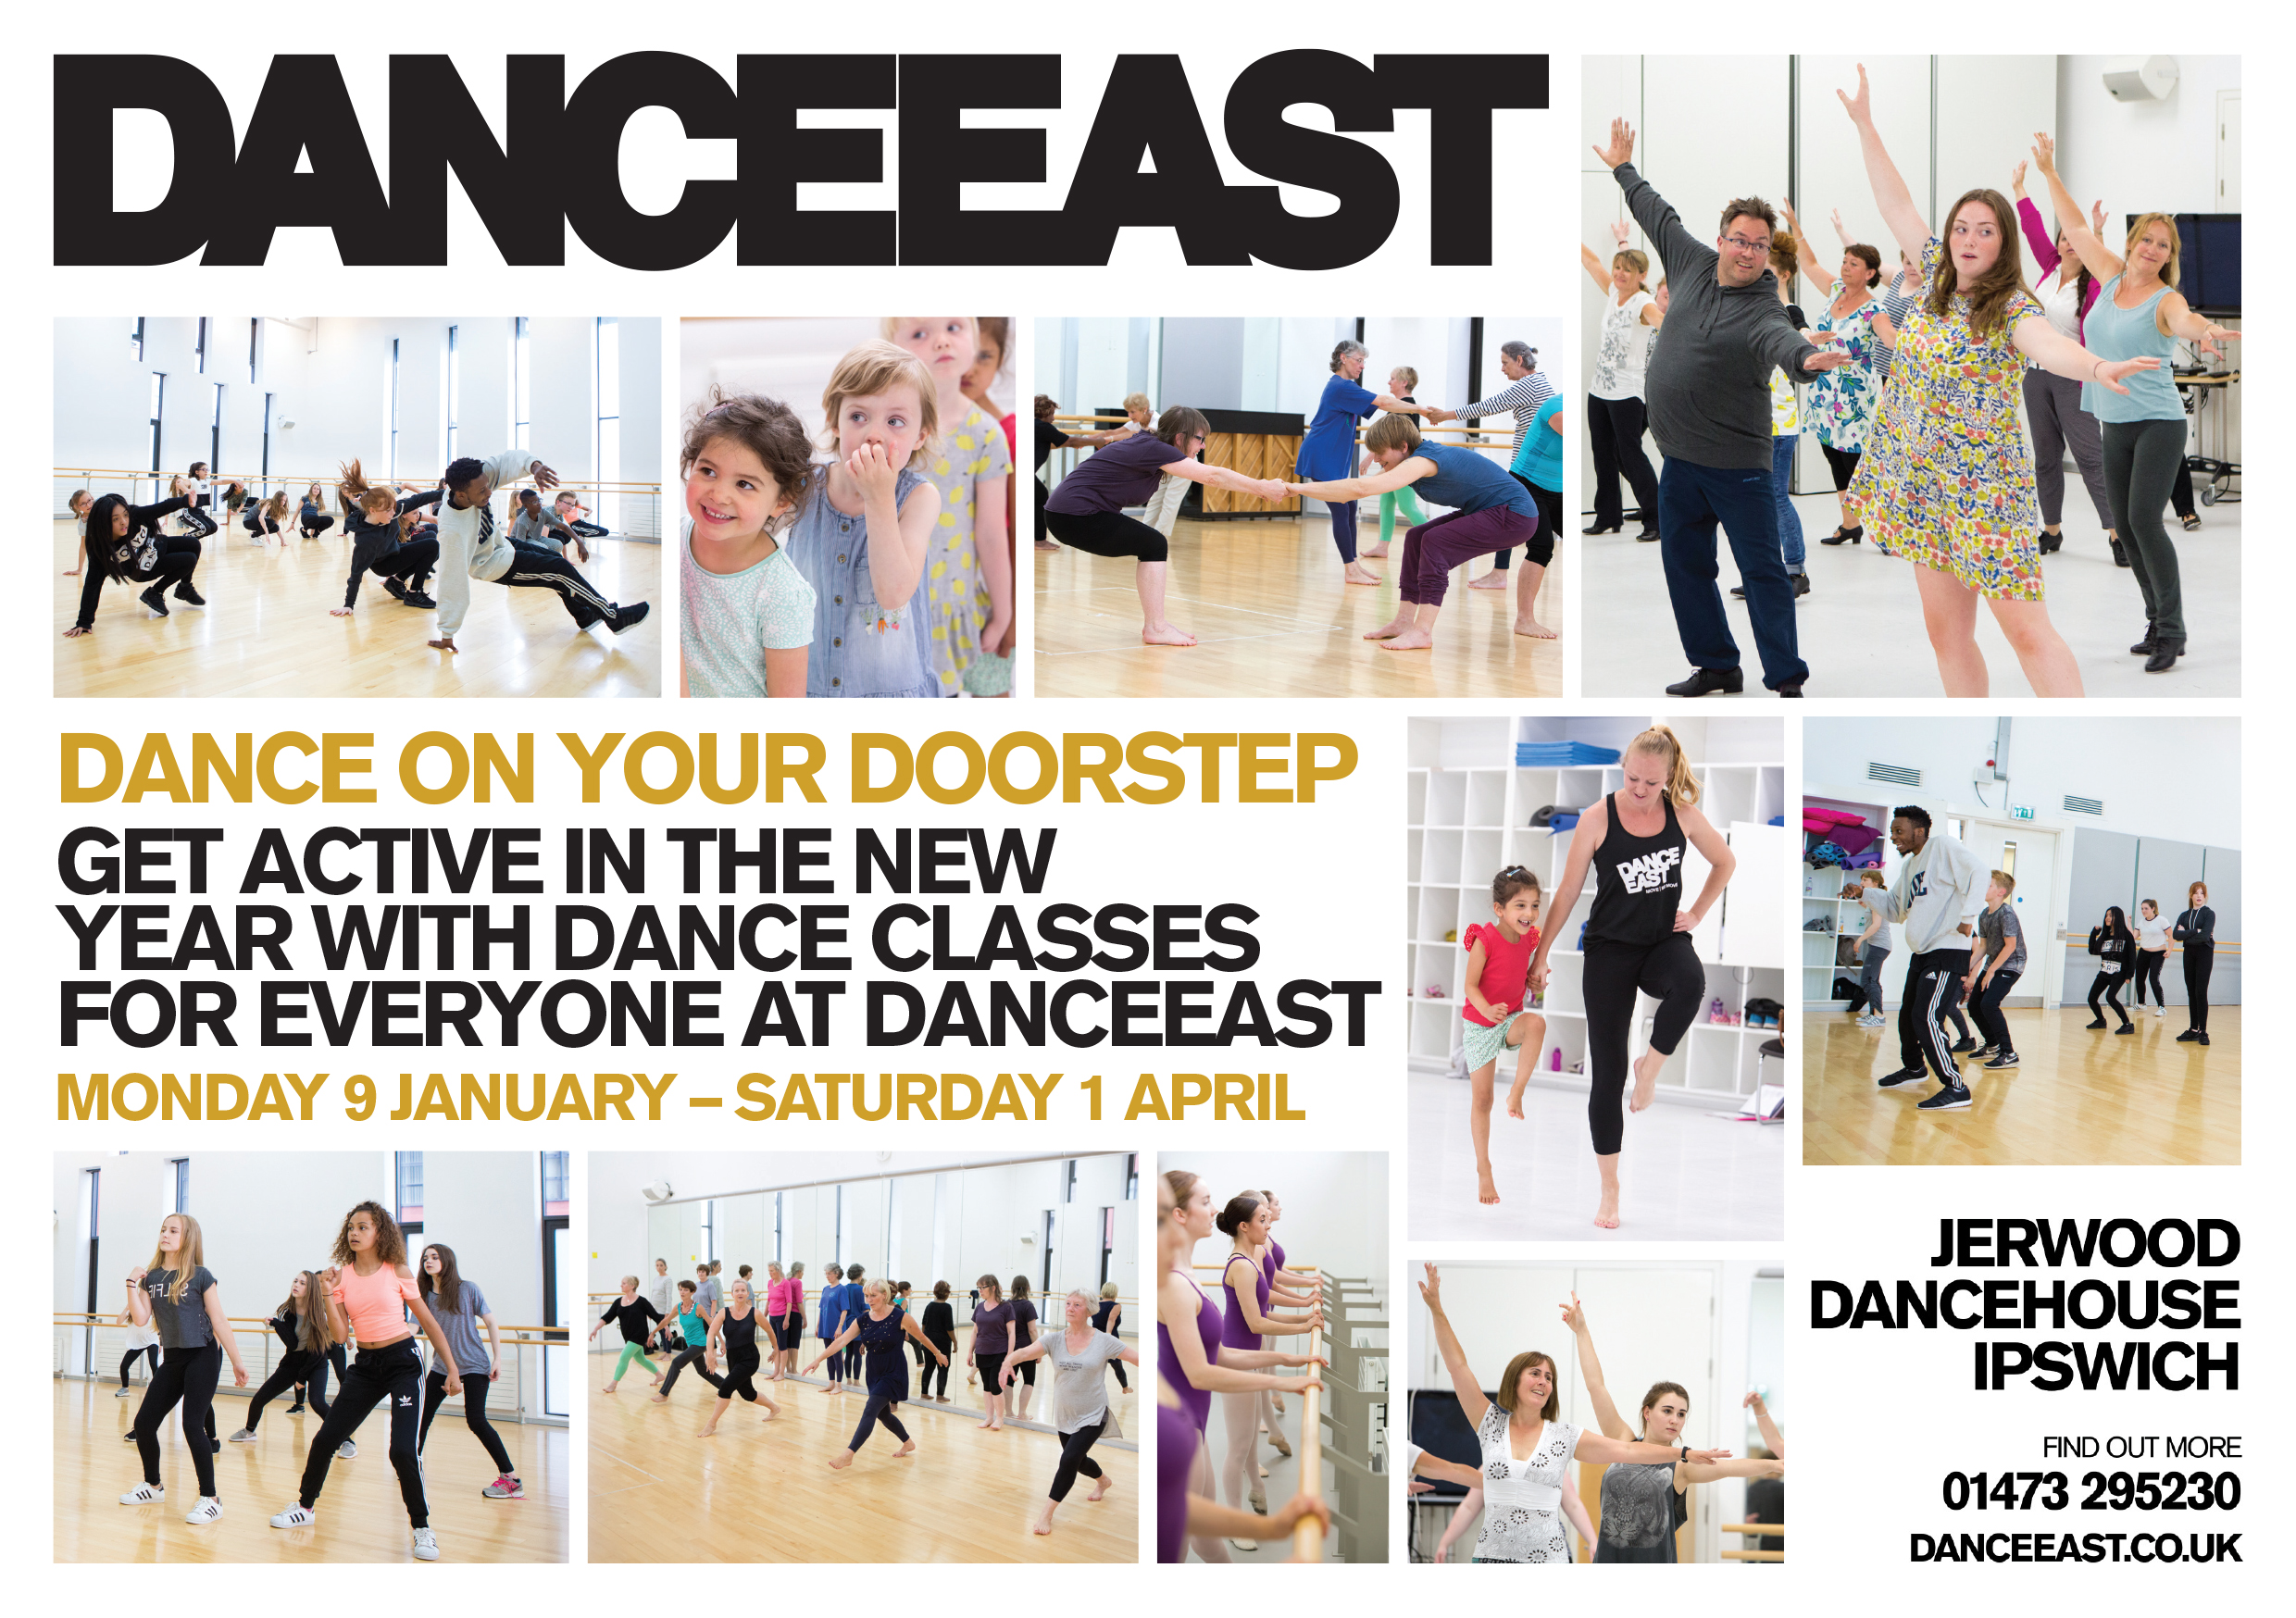 ipswich, waterfront, dance east, shows, performances